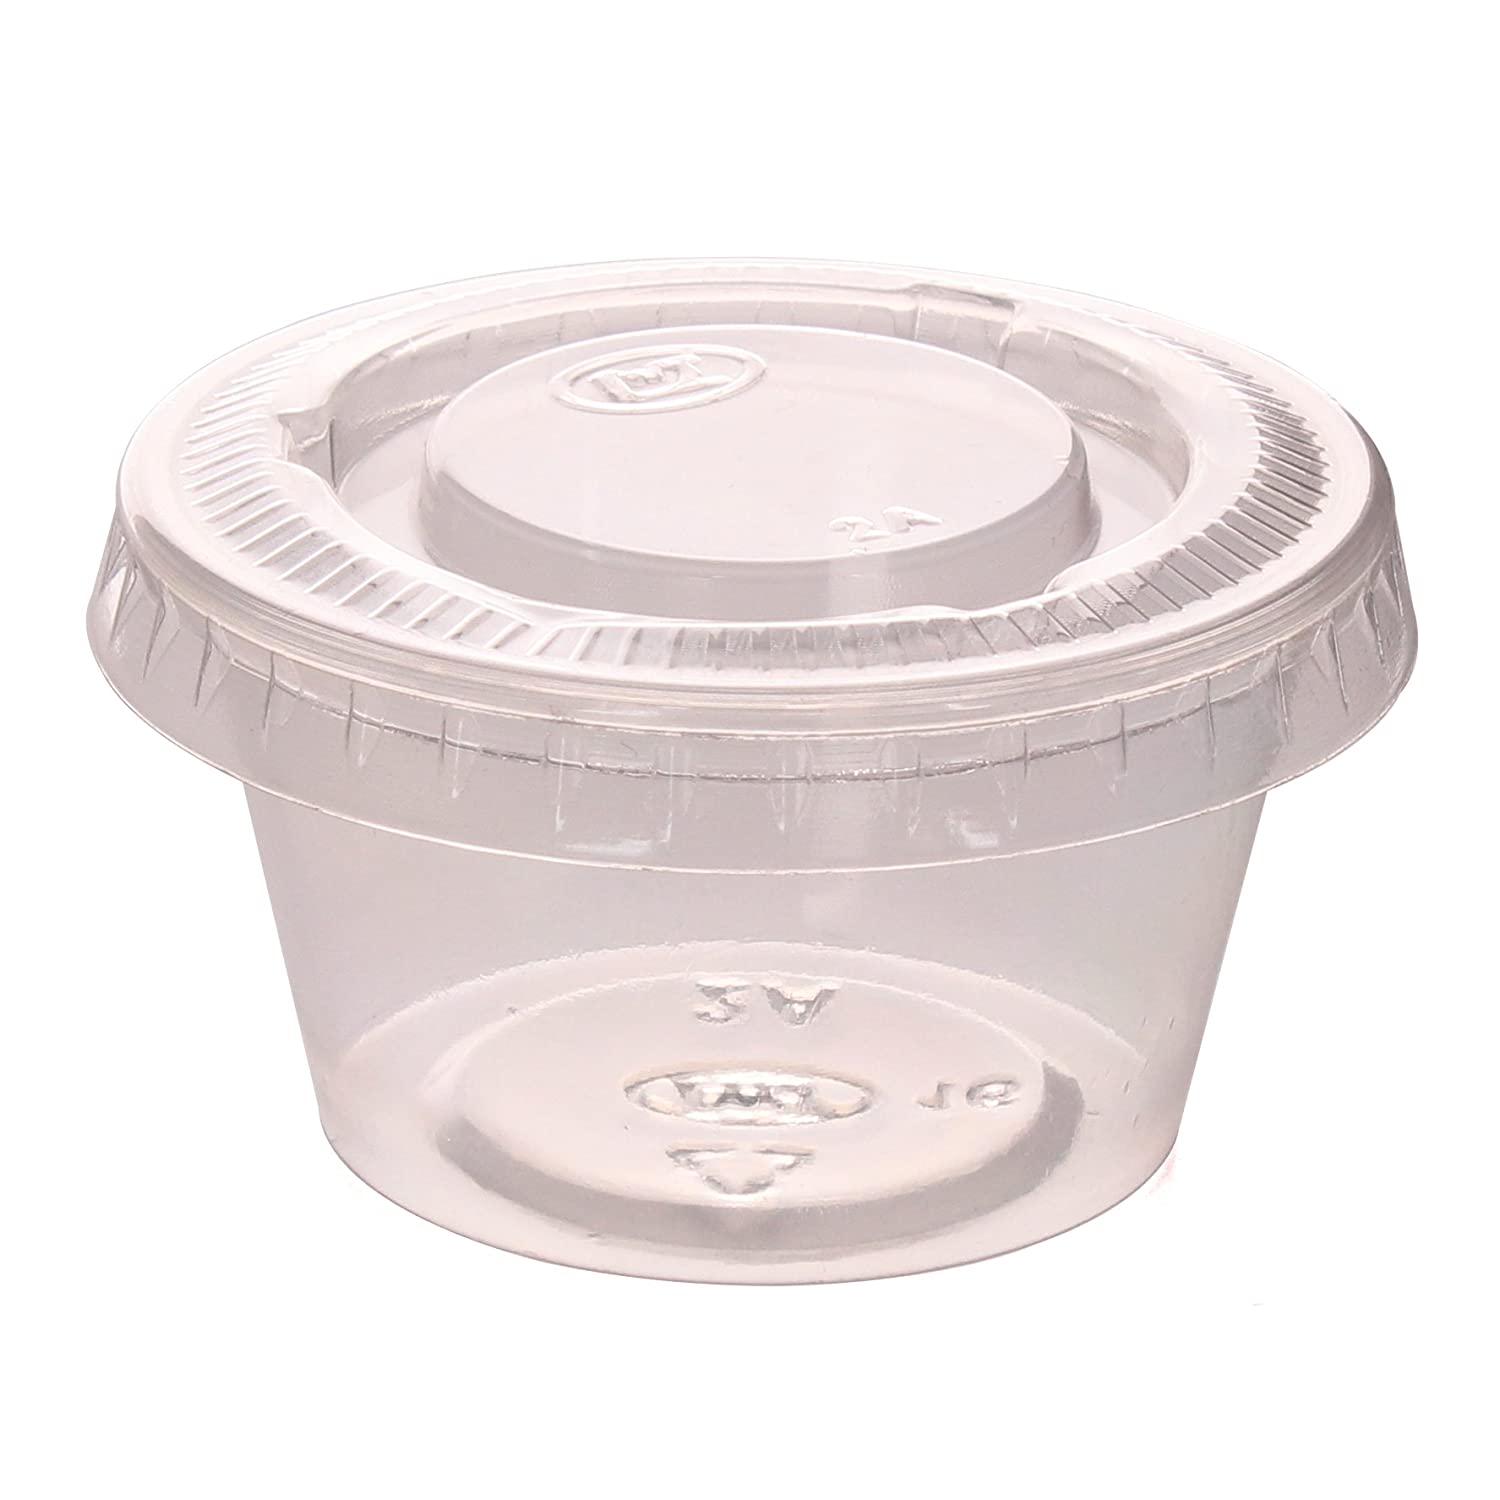 Zicome 2-Ounce Plastic Disposable Portion Cups Souffle Cups with Lids for Shots, Salad Dressings, Sauces, 100 Counts